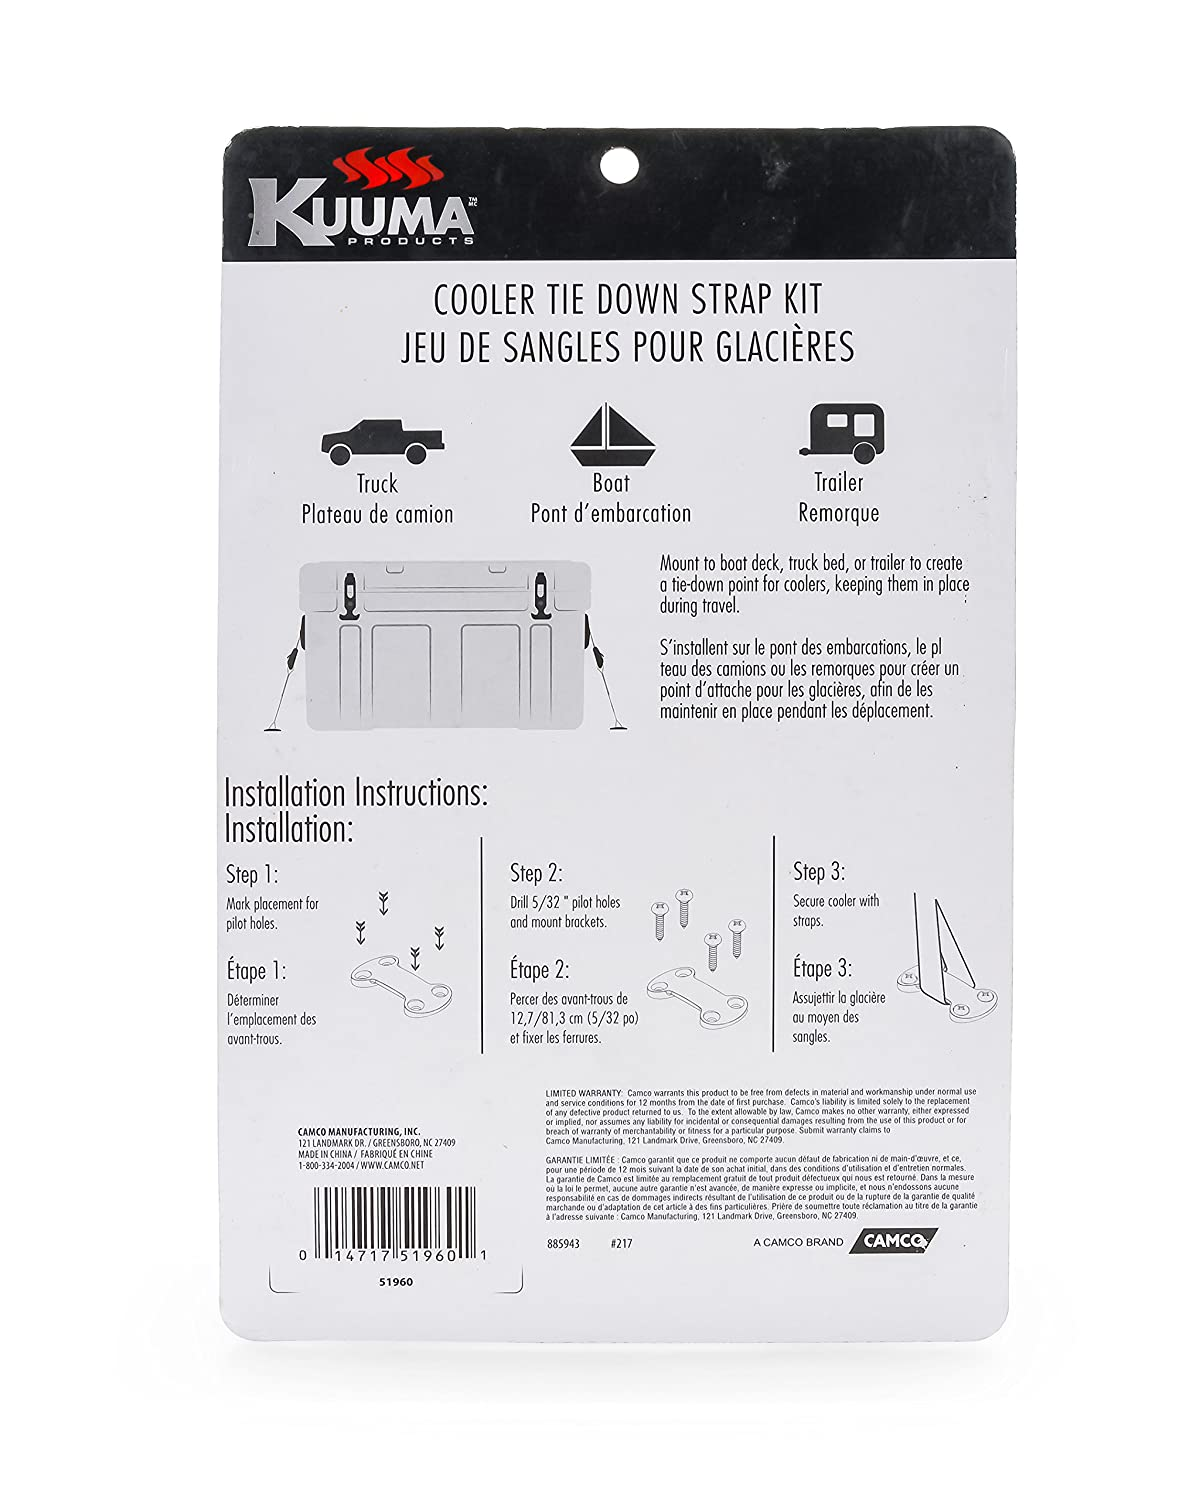 SS Screws-for RVs,Boats,and Truck Beds 2 Pack Kuuma 51960 Cooler Tie Kit Straps, Mounting Brackets 8 2 Inlcudes 2 and